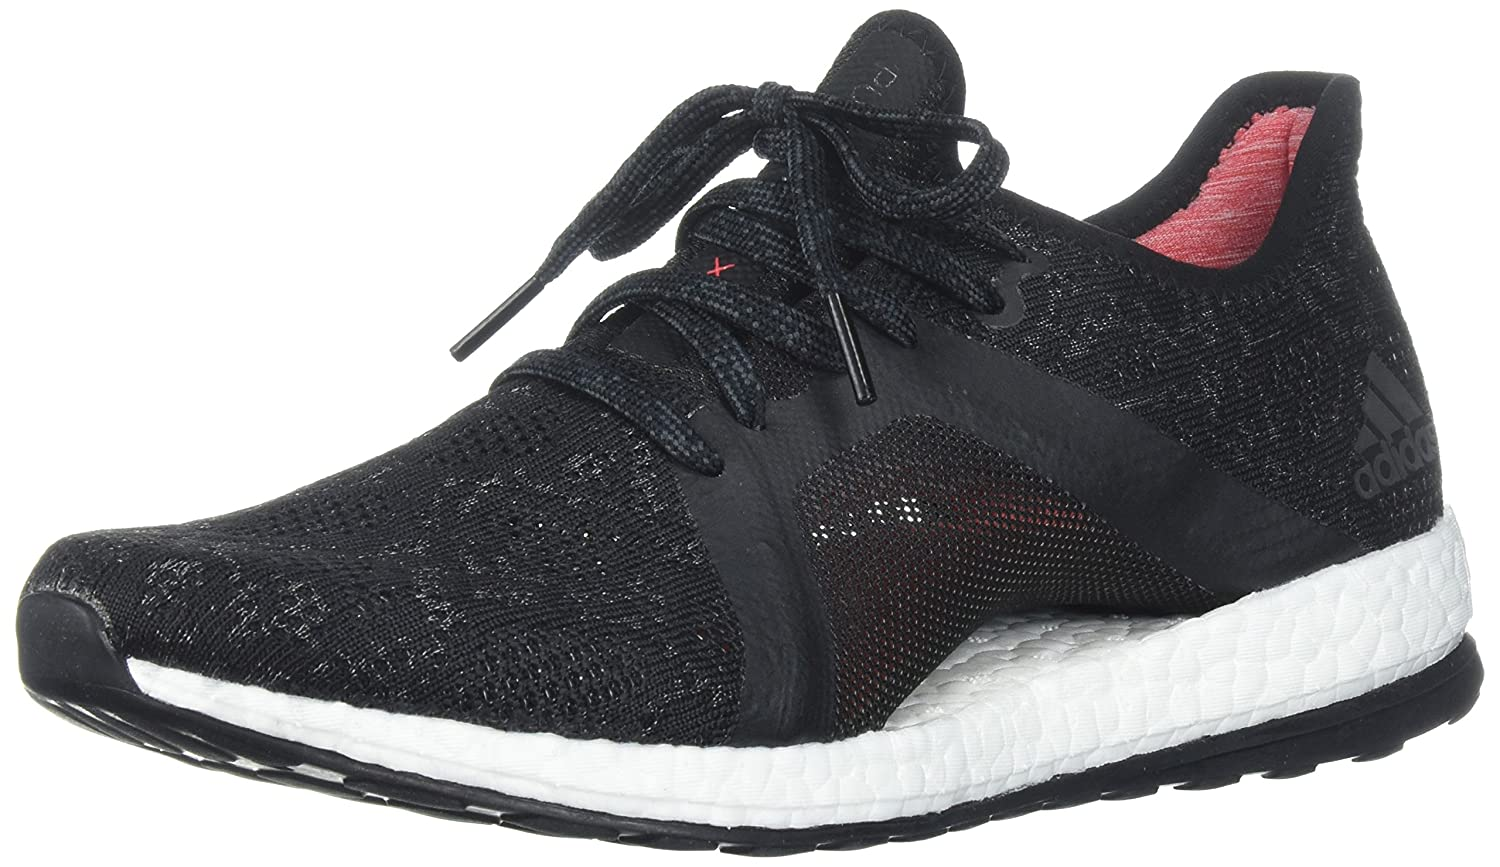 adidas Women's Pureboost X Element Running Shoe B072BVQC2R 6.5 B(M) US|Grey Five/Core Black/Real Coral